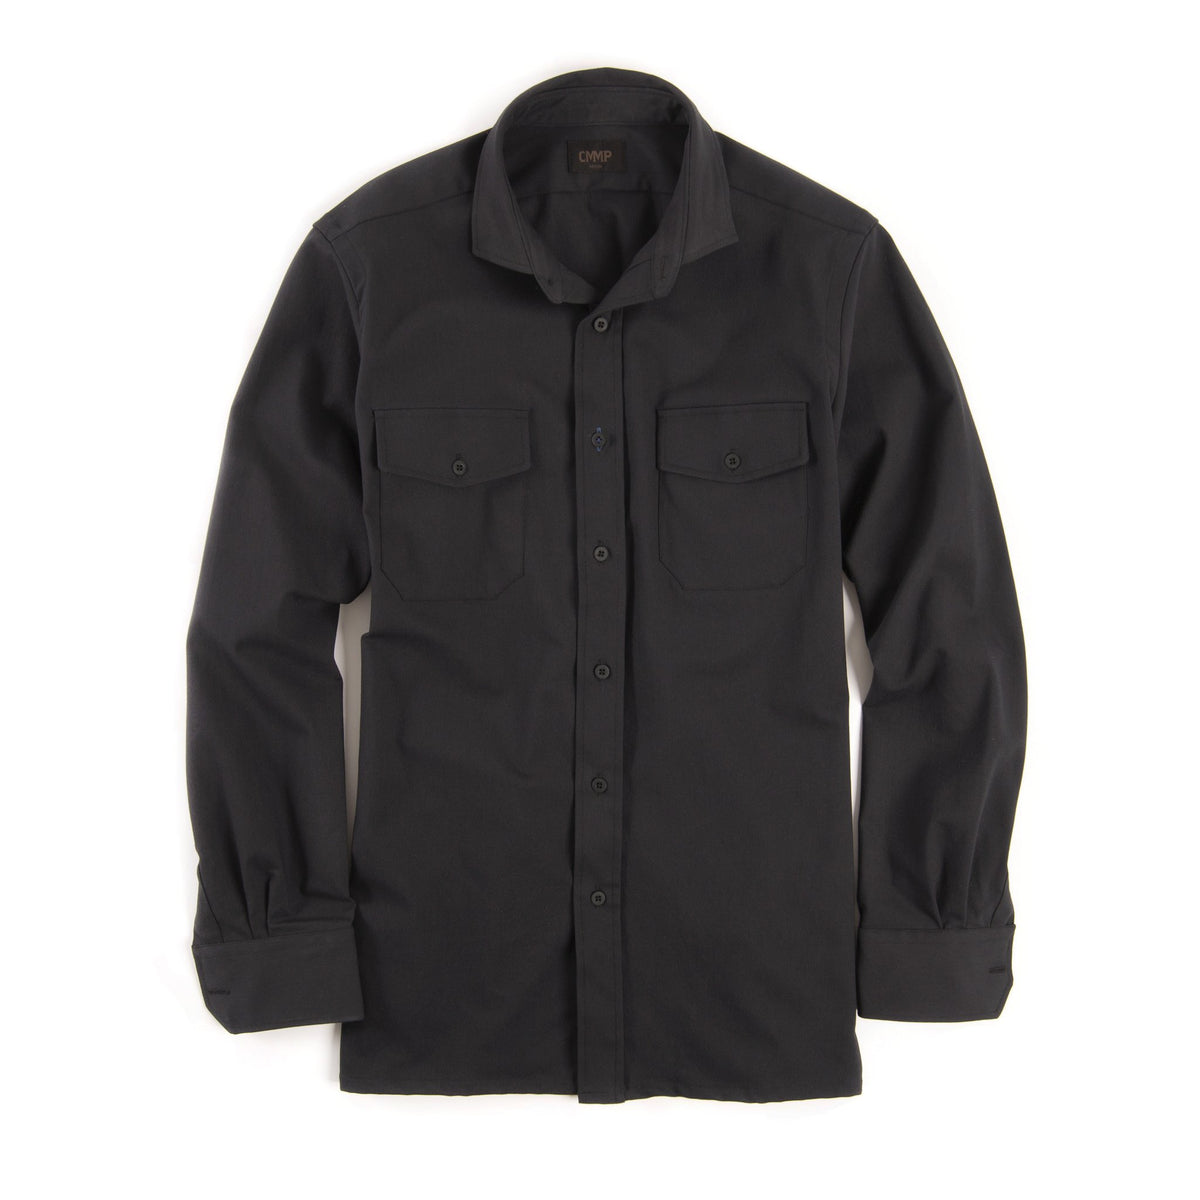 Tech Shirt Jacket - Black